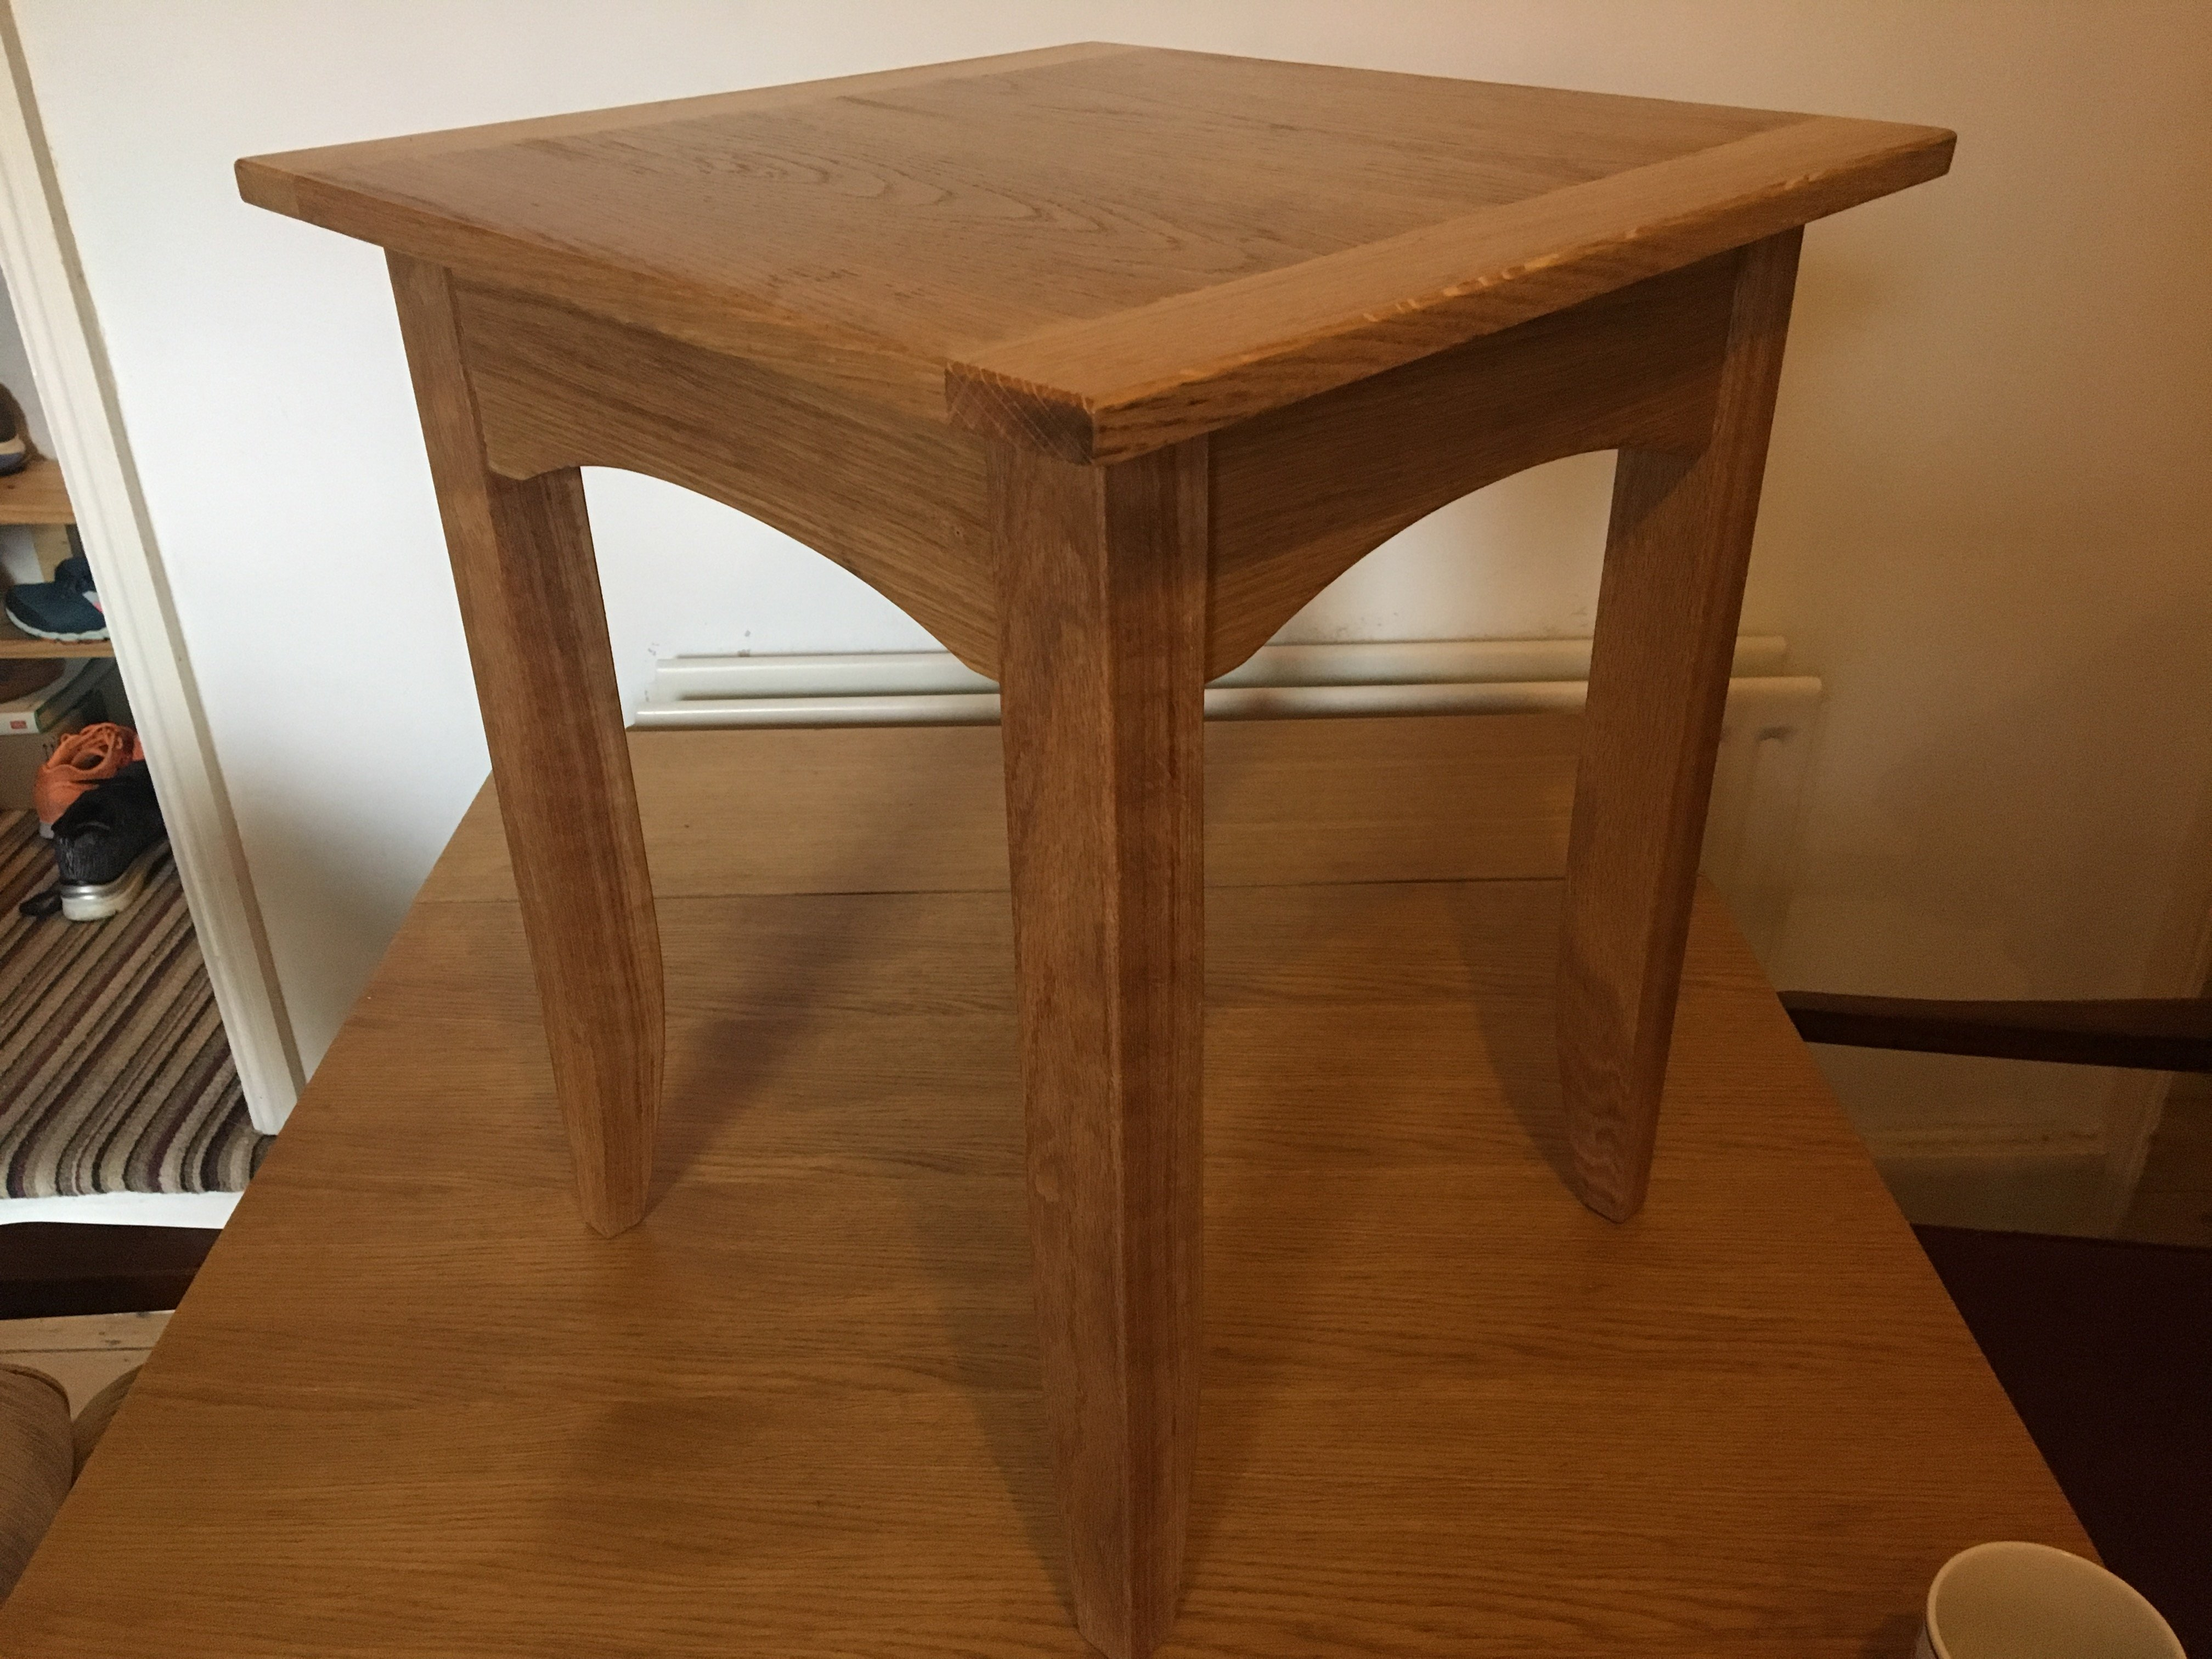 Occasional Table by chughesdon